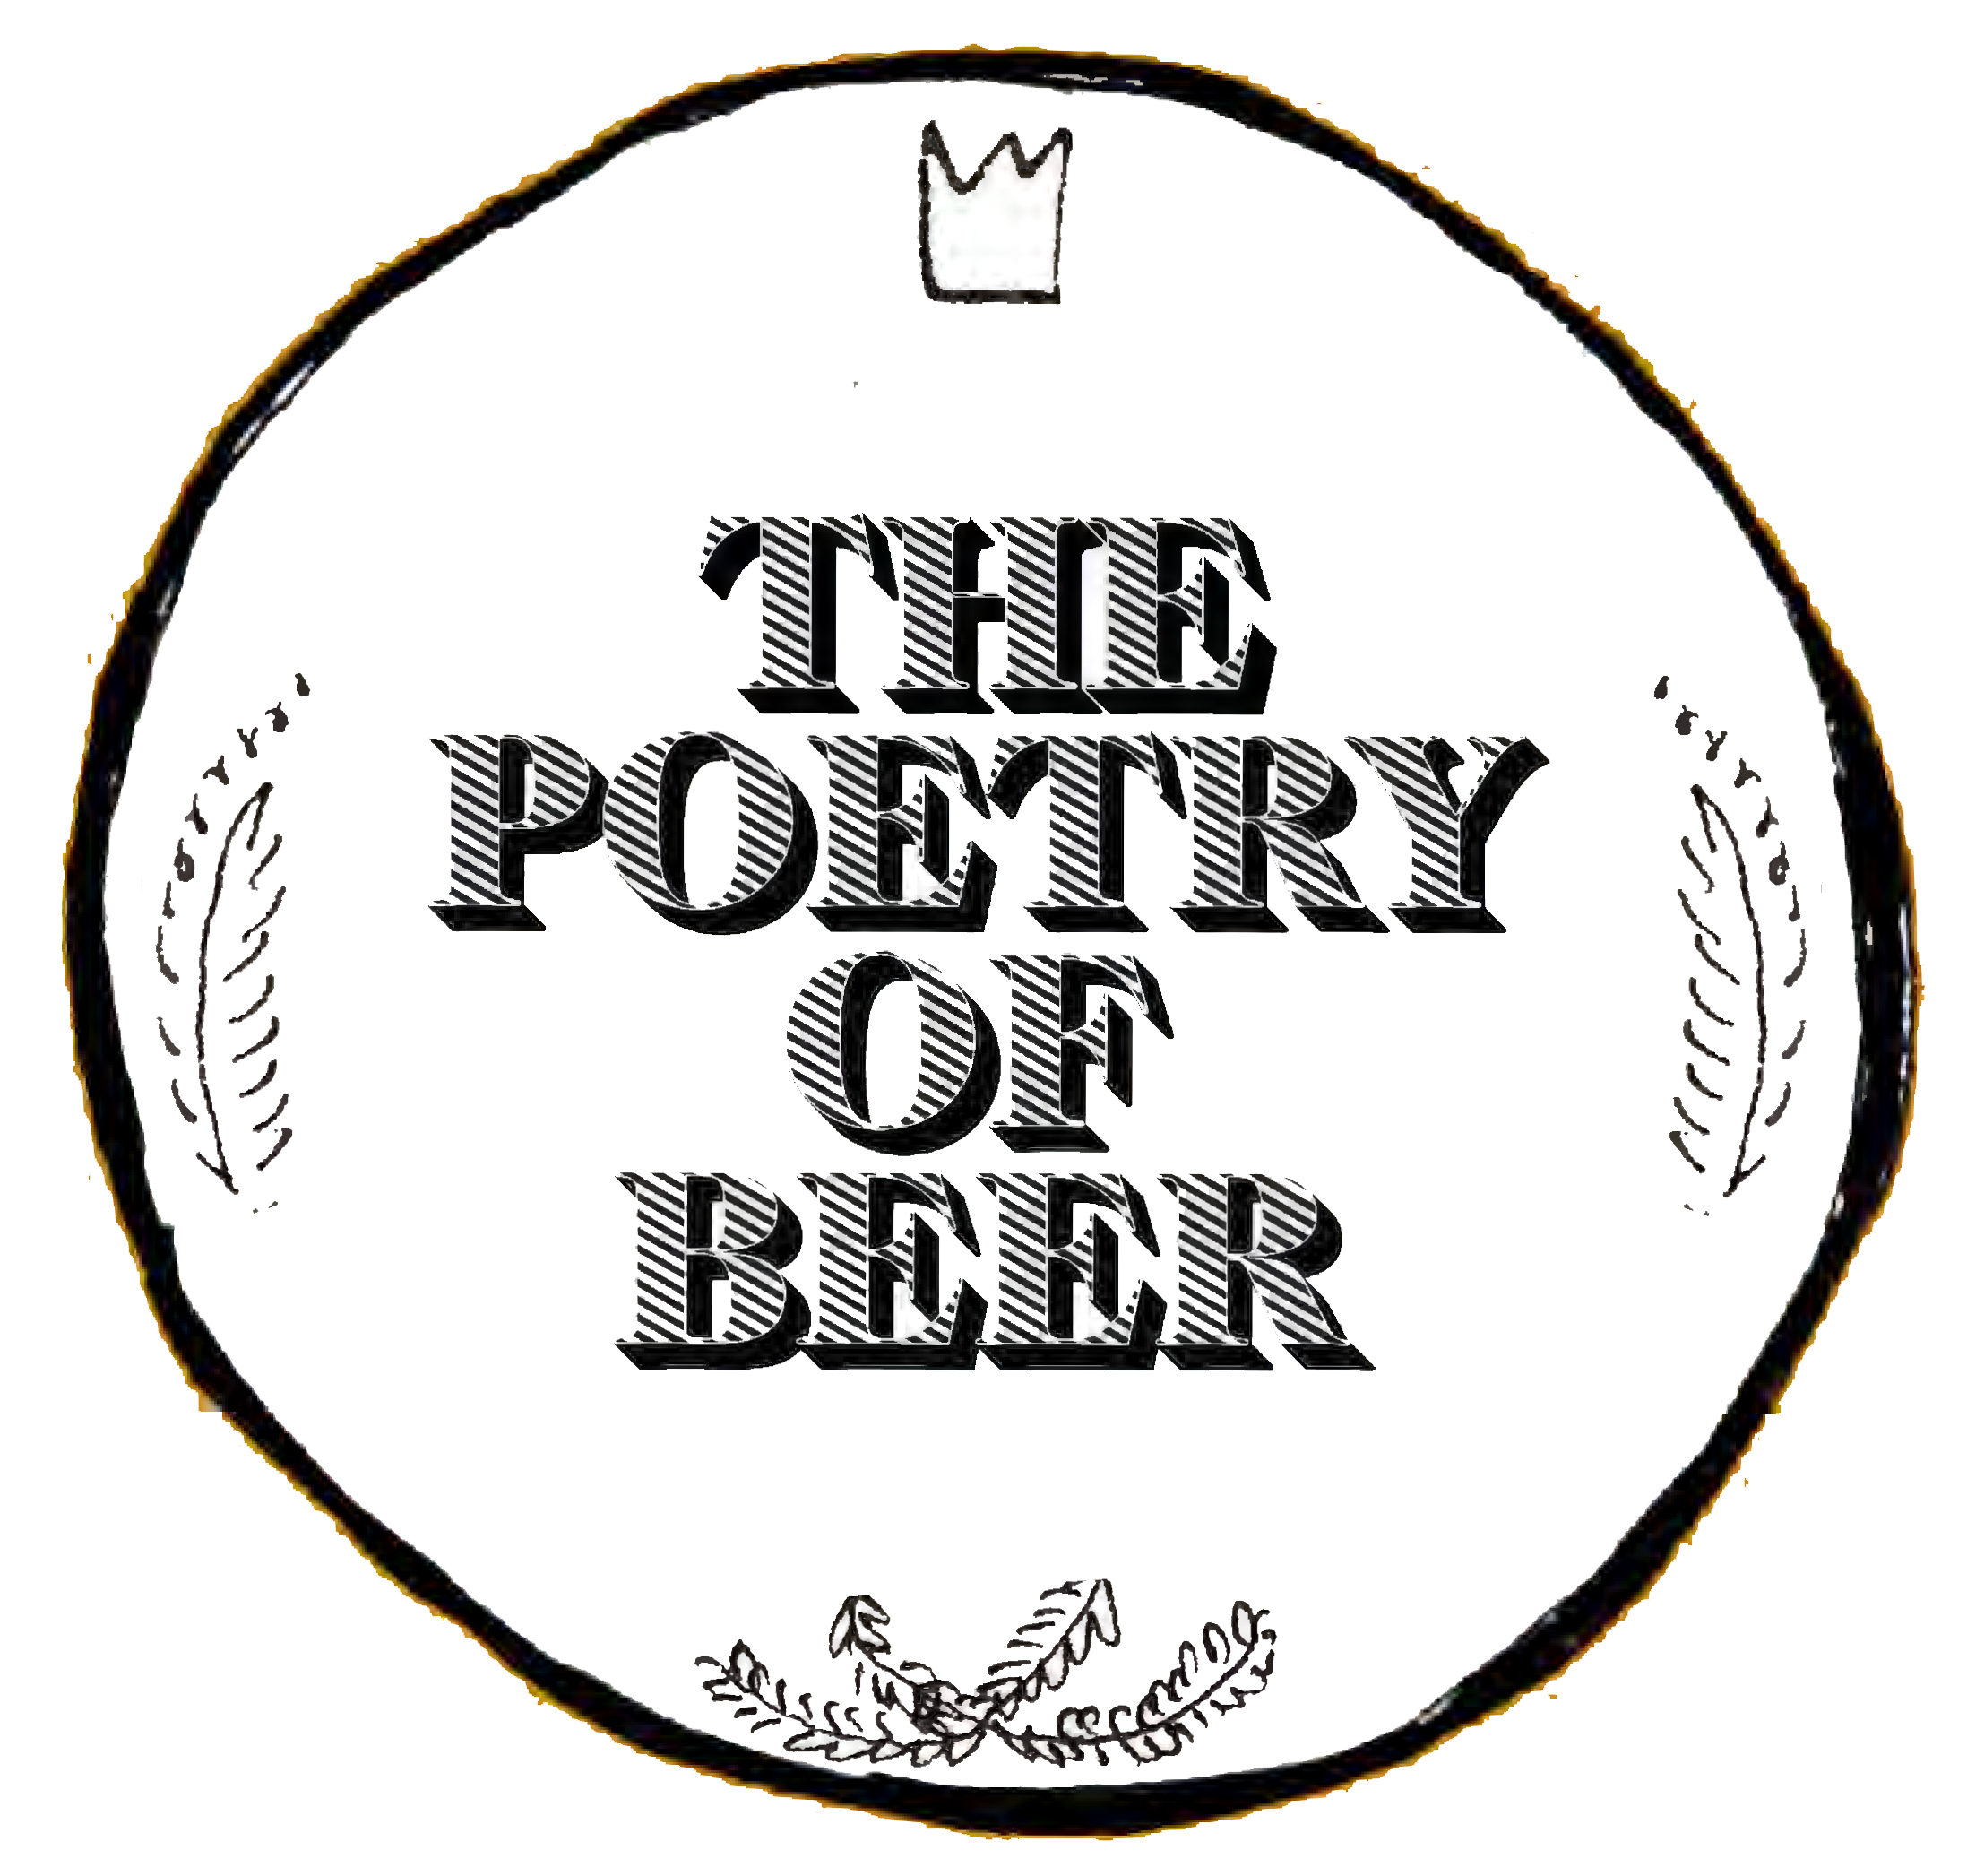 The Poetry Of Beer